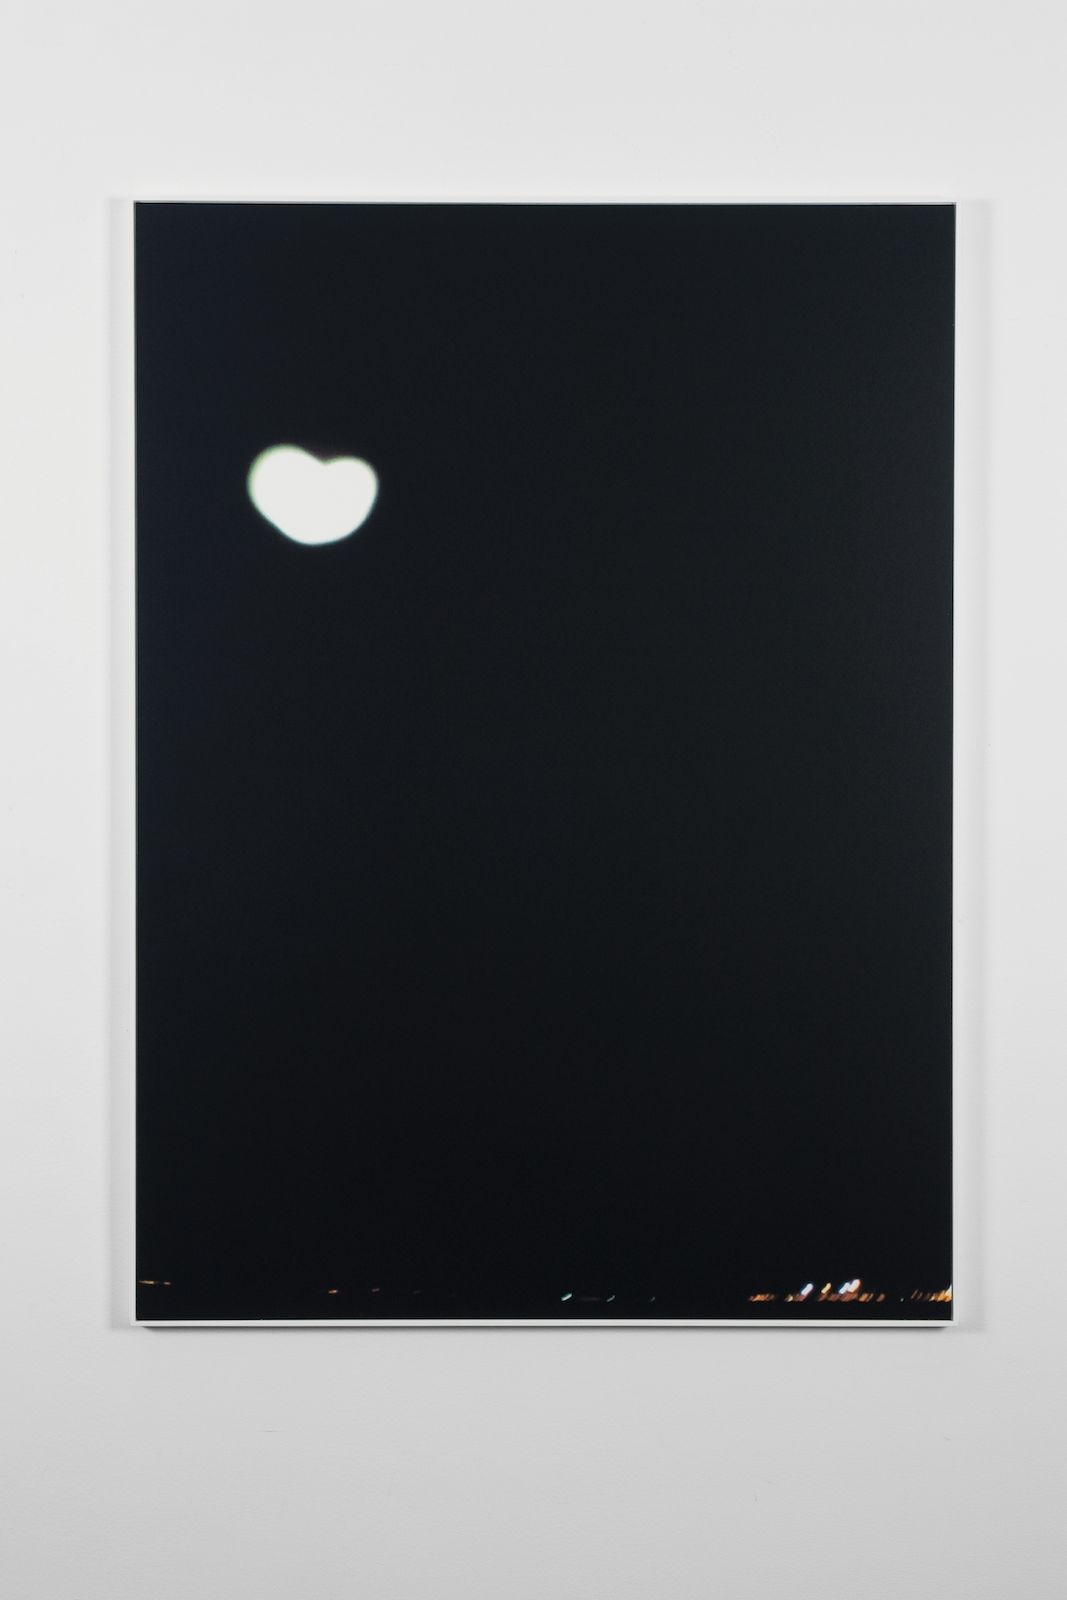 Moon, 2011, screen print on paper, frame, 110 x 80 cm, edition of 15 + 1 AP